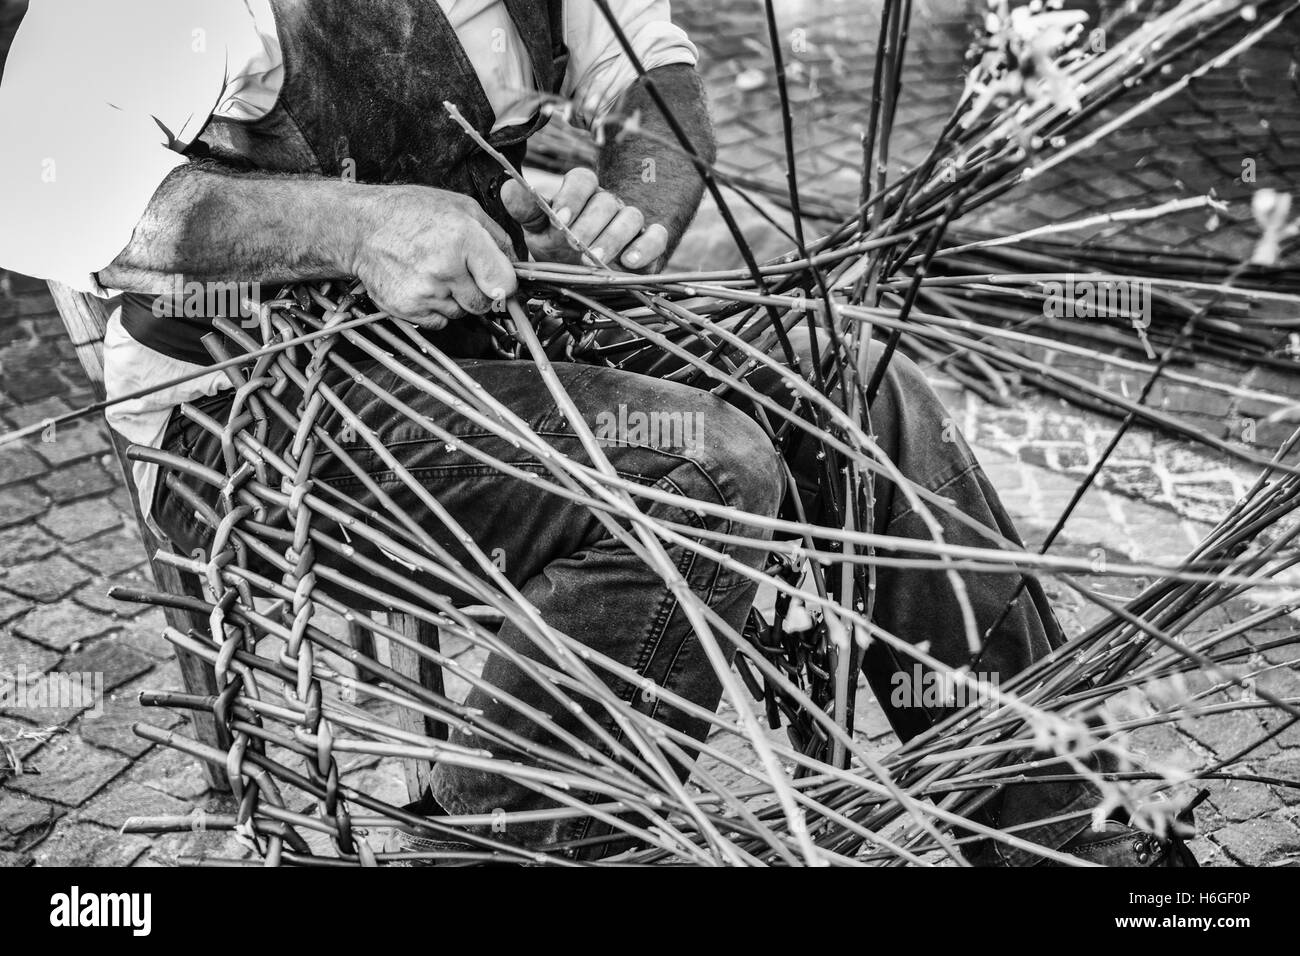 Artisan builds wicker baskets using the branches of Salix viminalis. - Stock Image